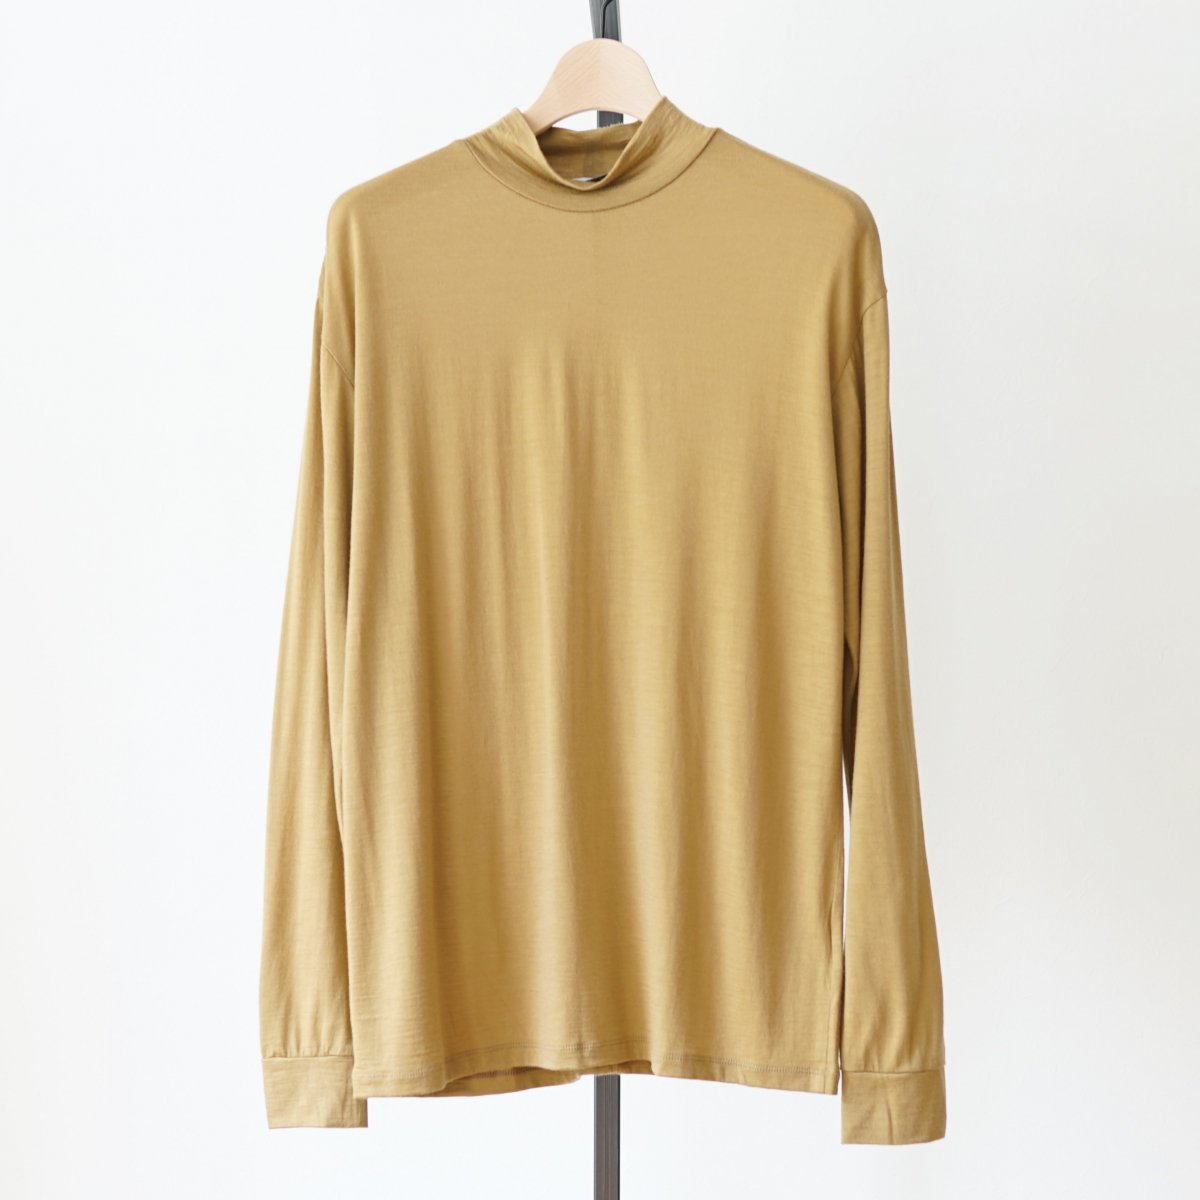 【UNDECORATED アンデコレイテッド】SUPER120 WOOL L/S T-SHIRTS - CAMEL